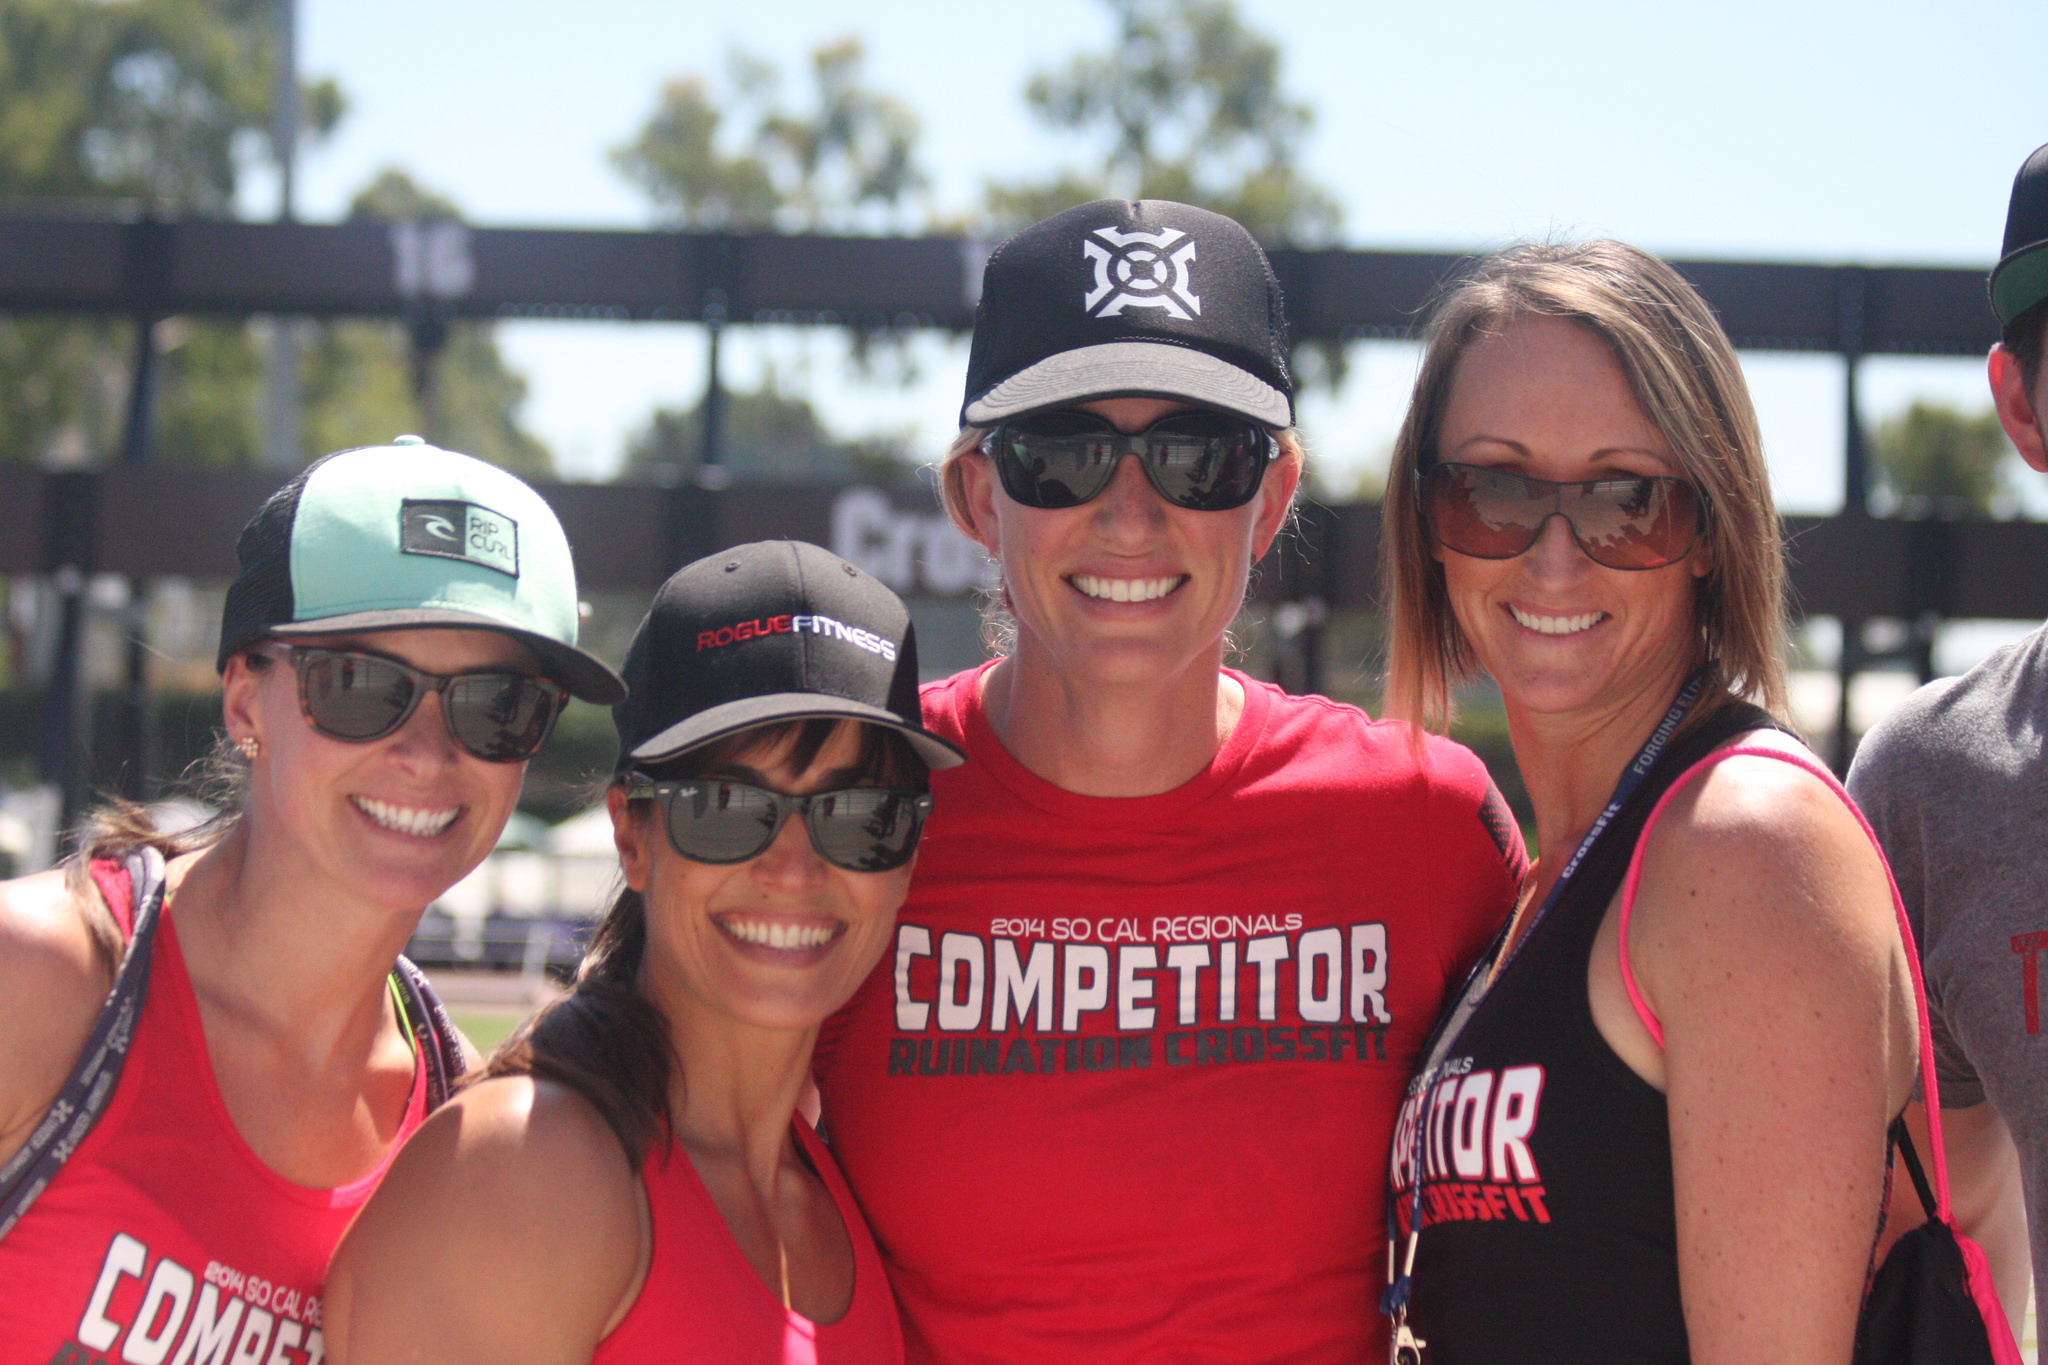 The girls at the 2014 Crossfit Games